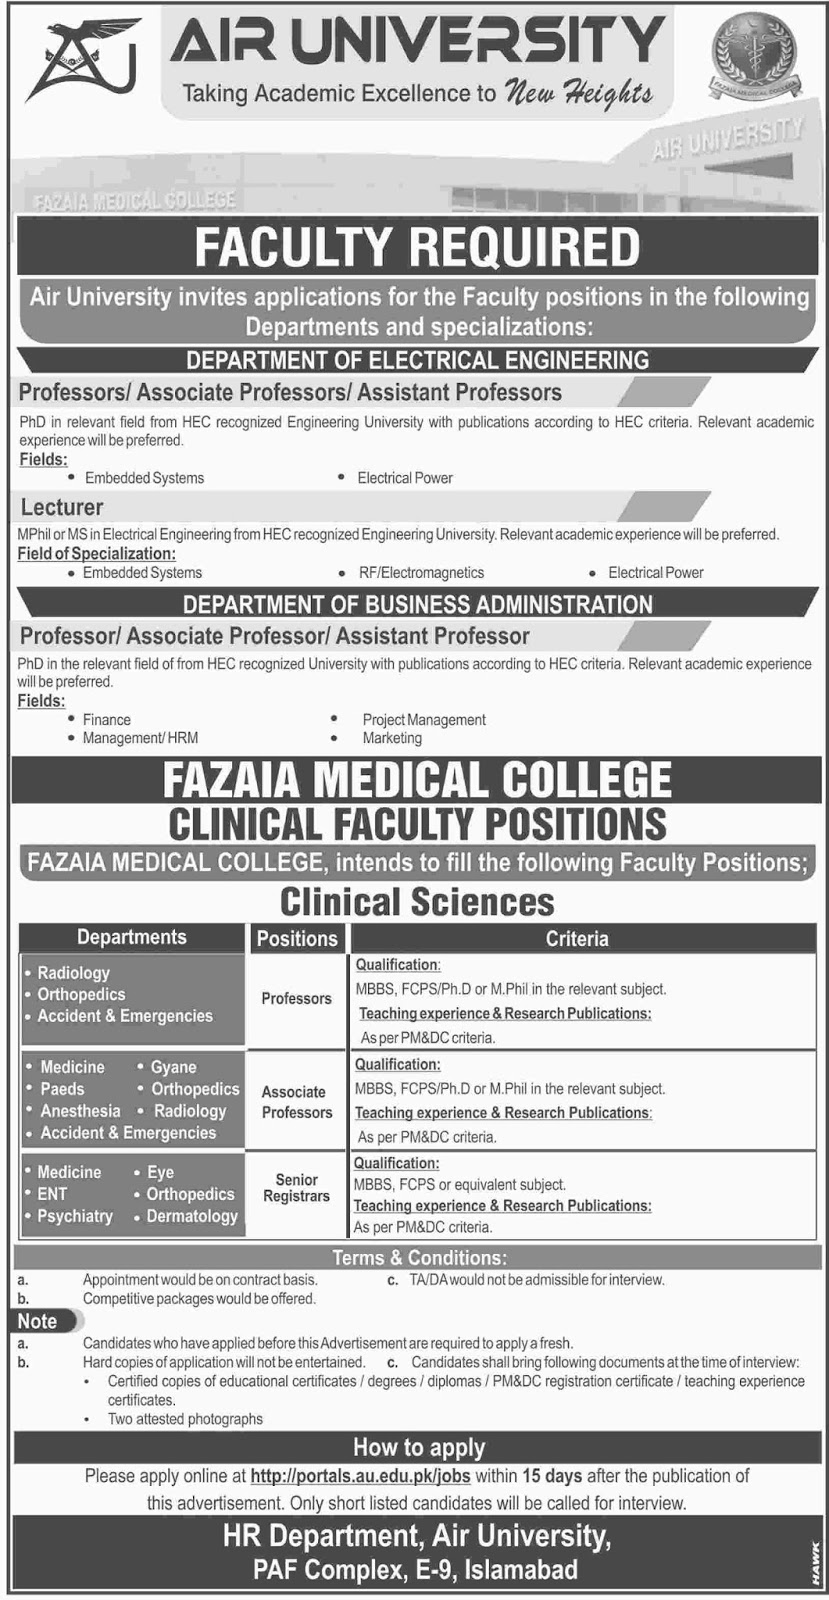 Jobs In Air University, Fazaia Medical College Nov 2017